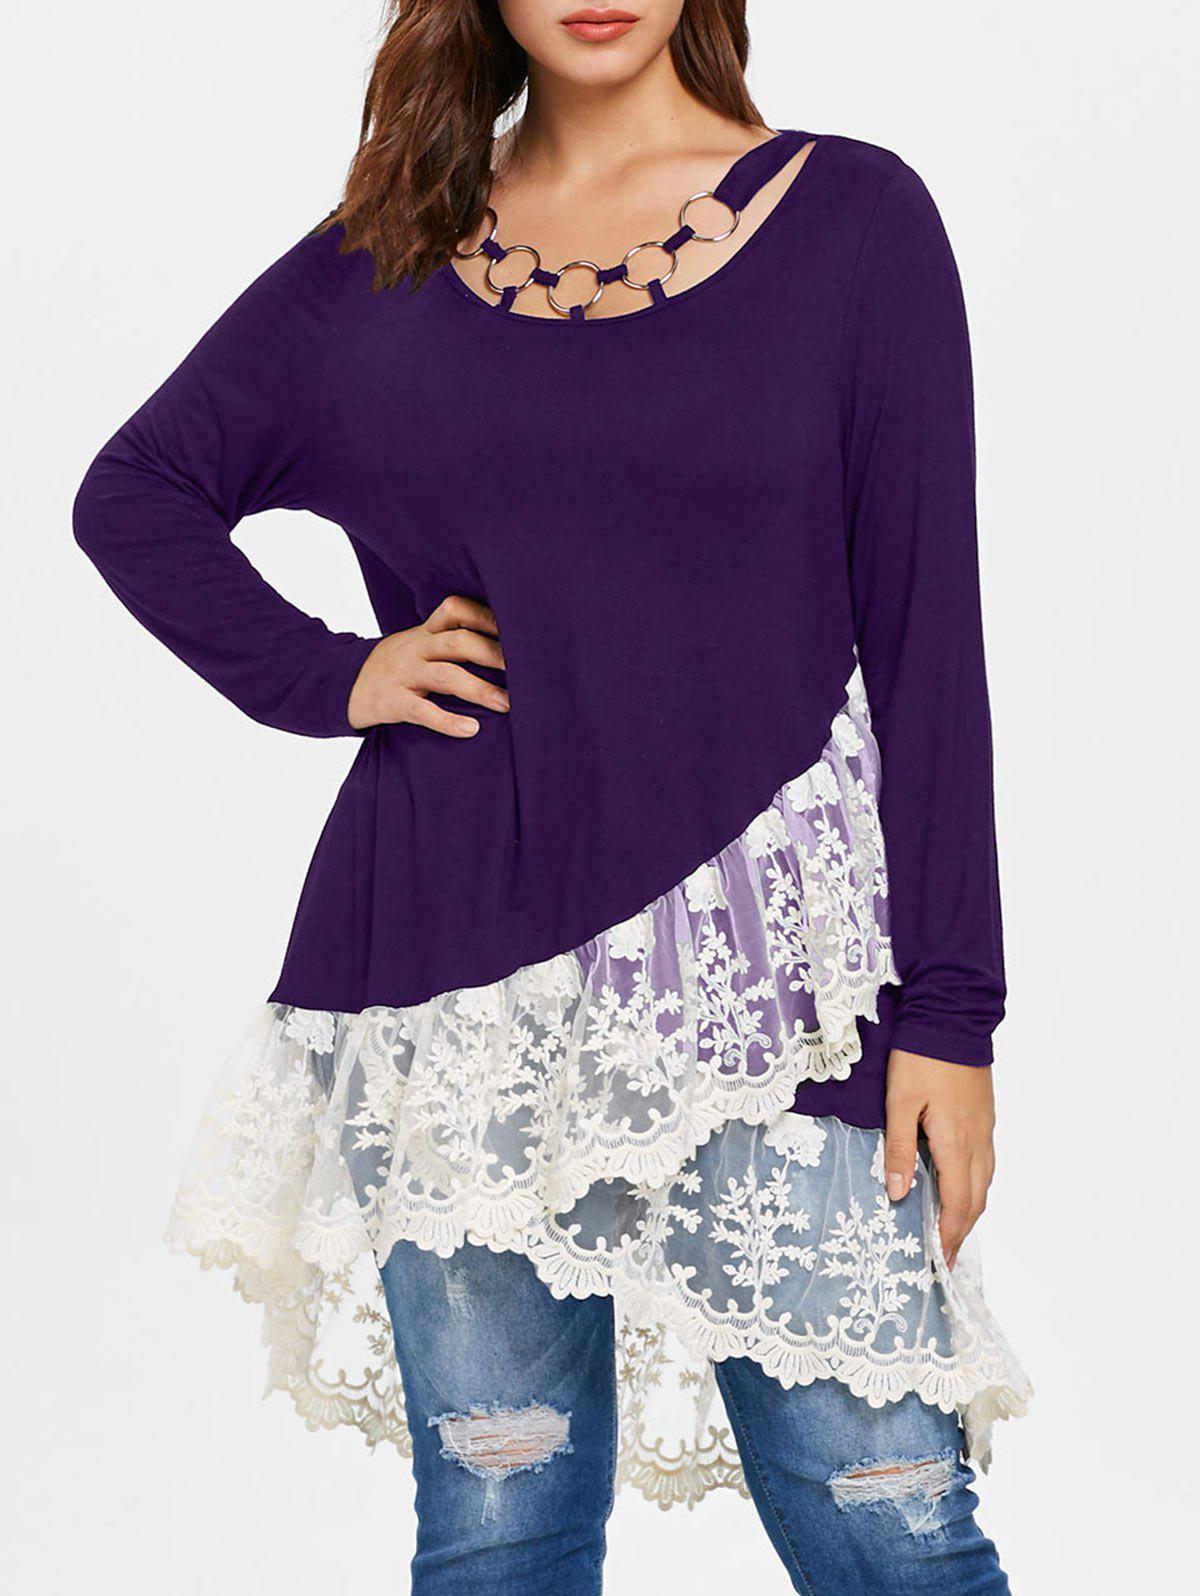 Plus Size Layered Lace Insert Tunic Tee - PURPLE IRIS L